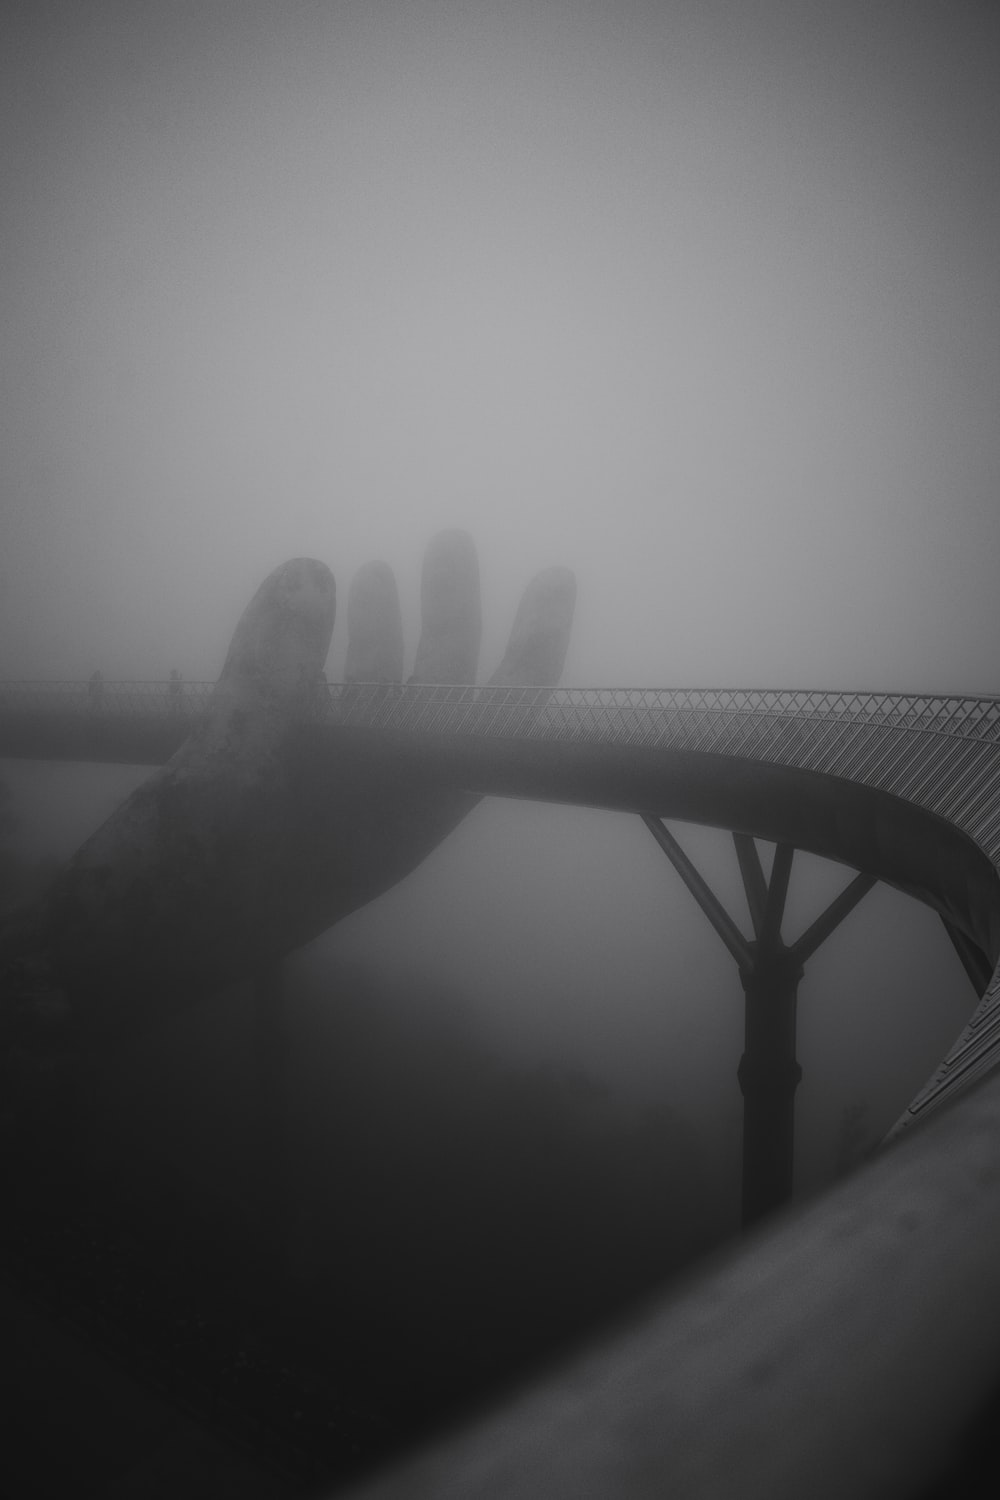 grayscale photography of hand holding bridge